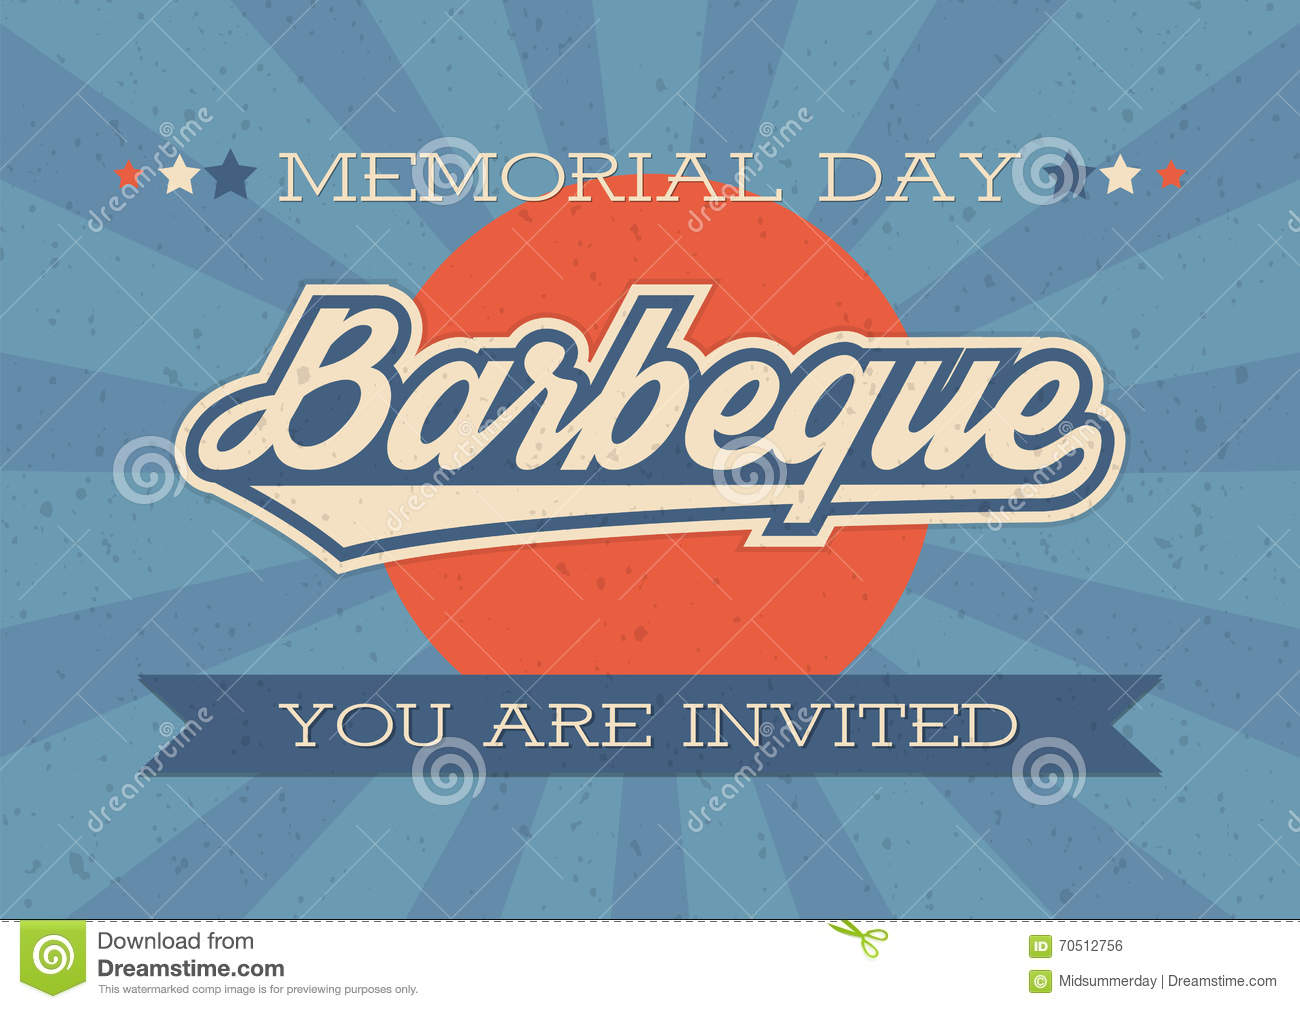 memorial day background vector illustration with text and ribbon